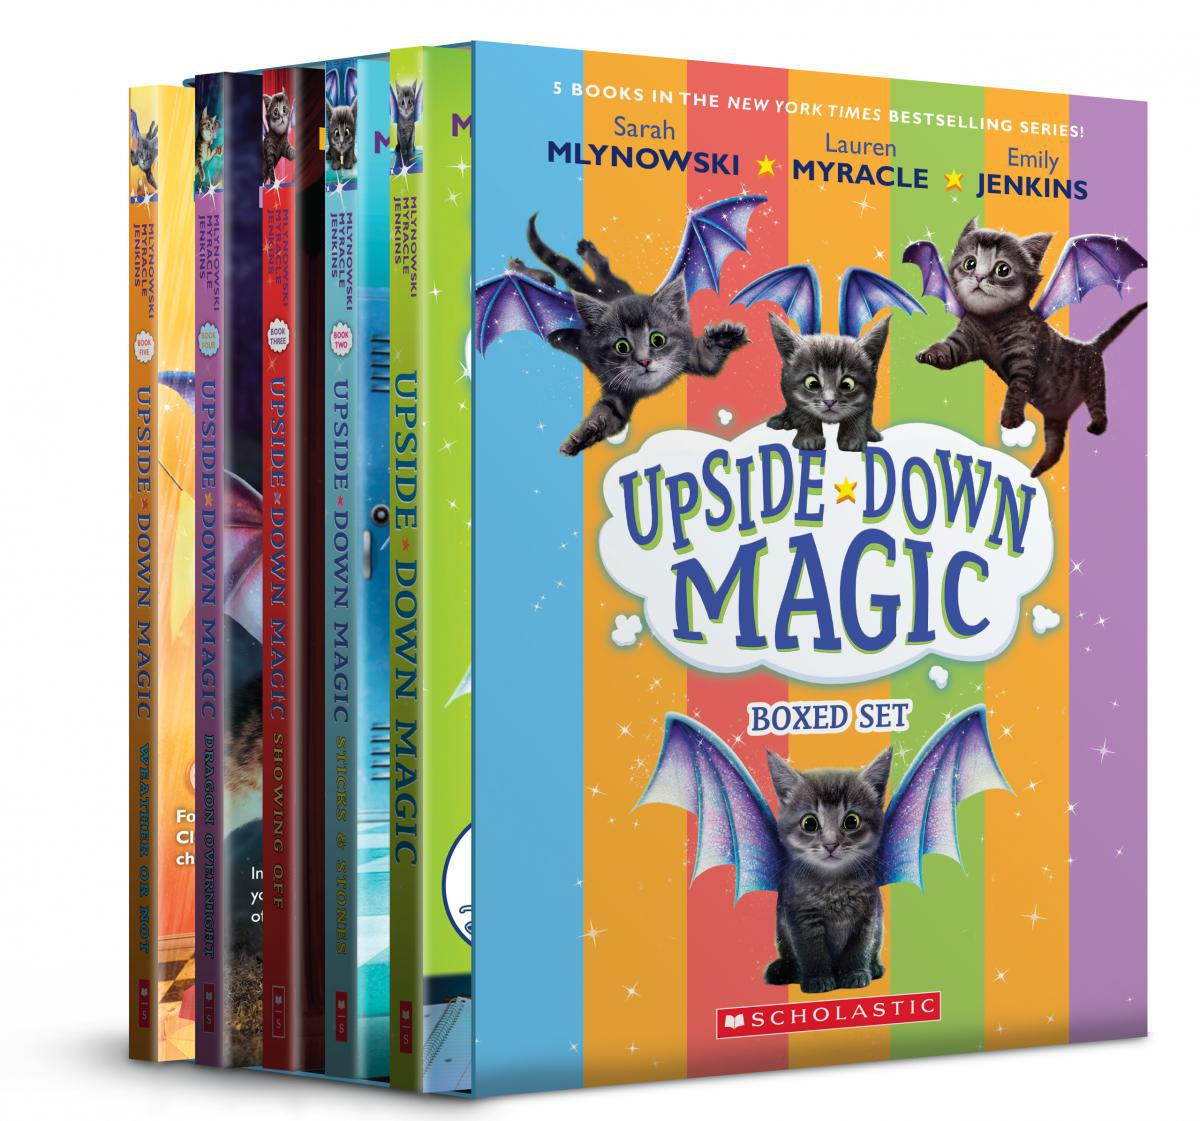 Upside-Down Magic Boxed Set